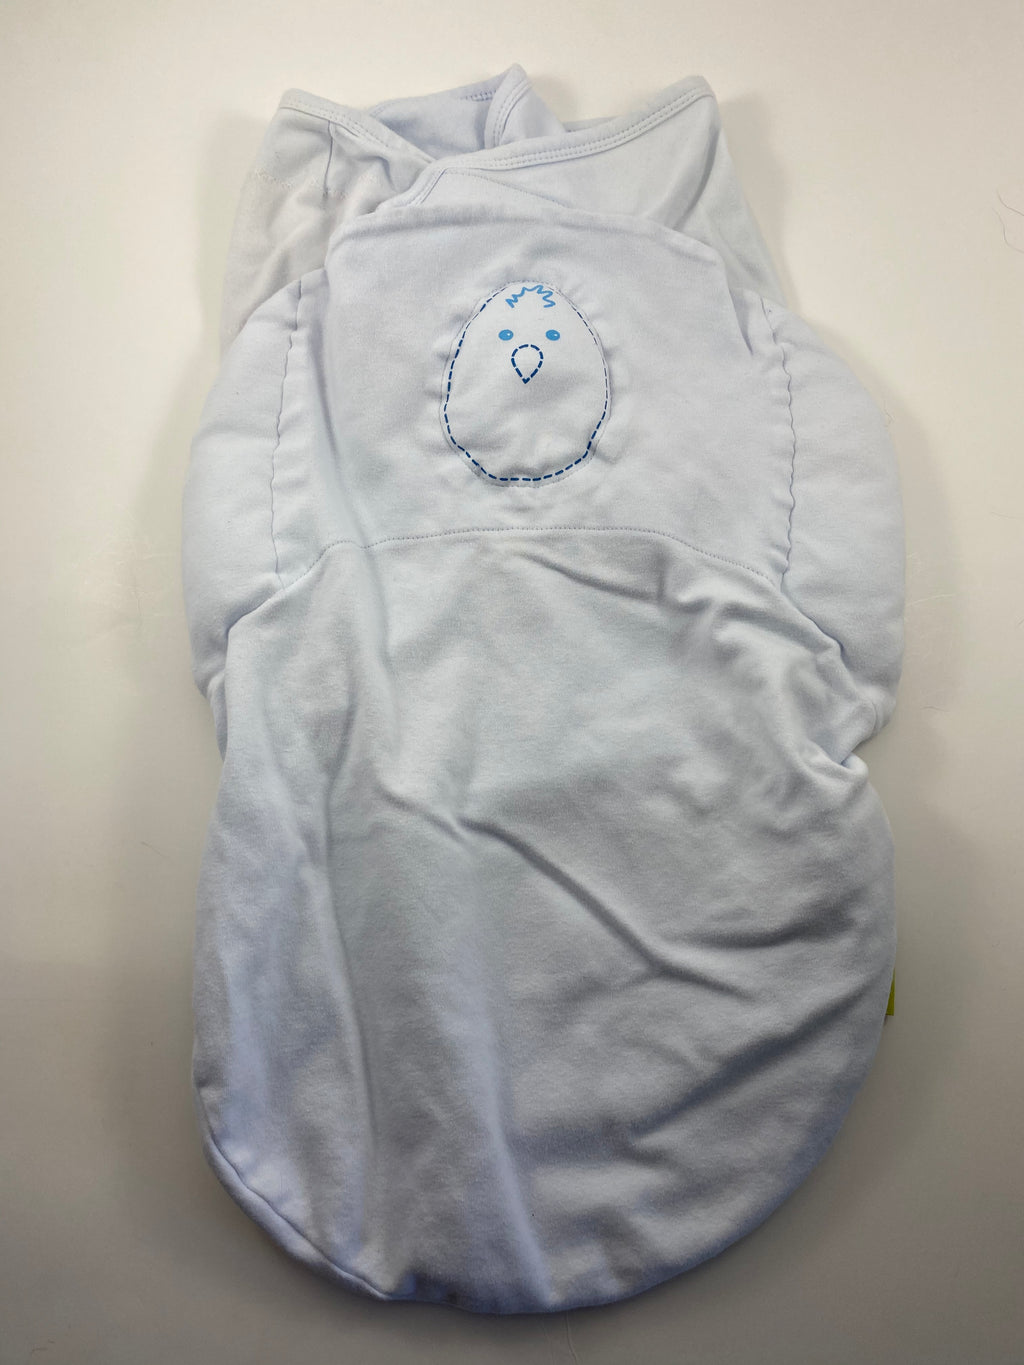 Boy's Sleep Sack - Size 0-3mo